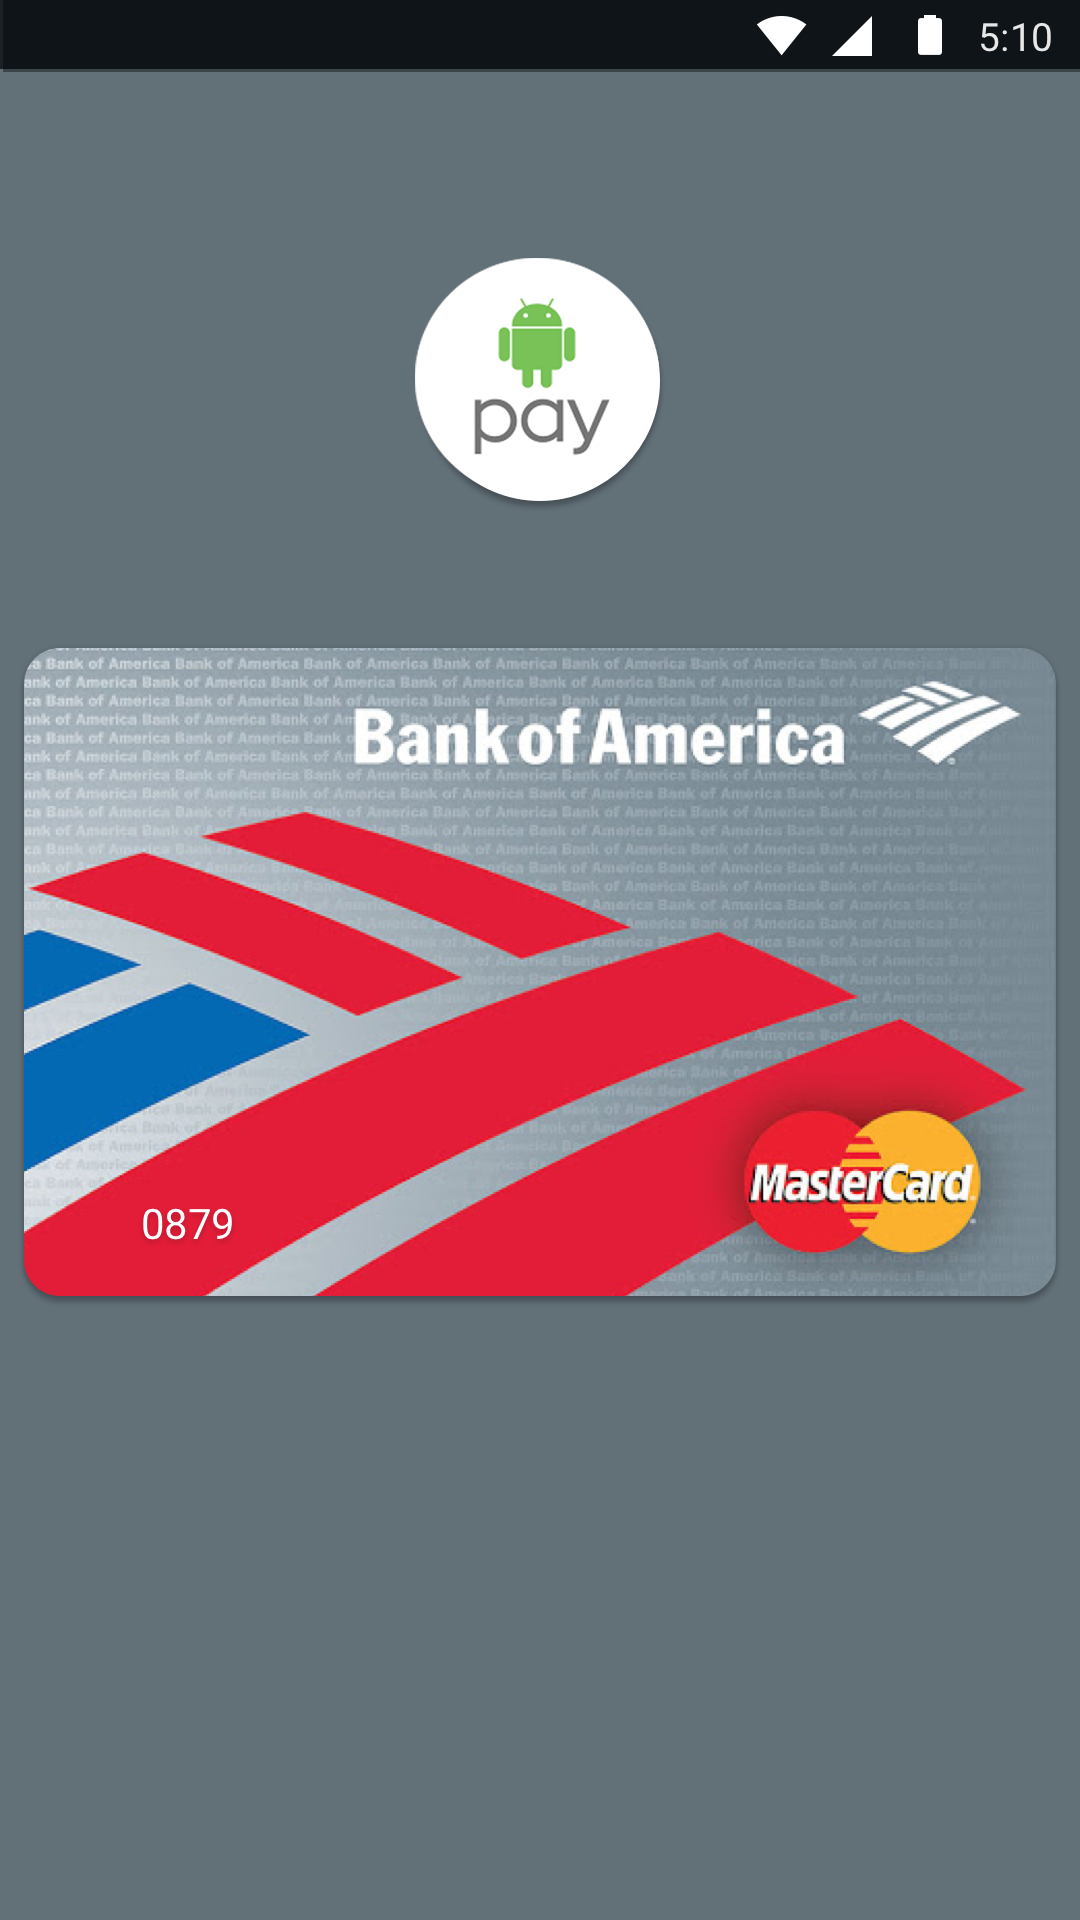 MasterCard Bank of America Android Pay